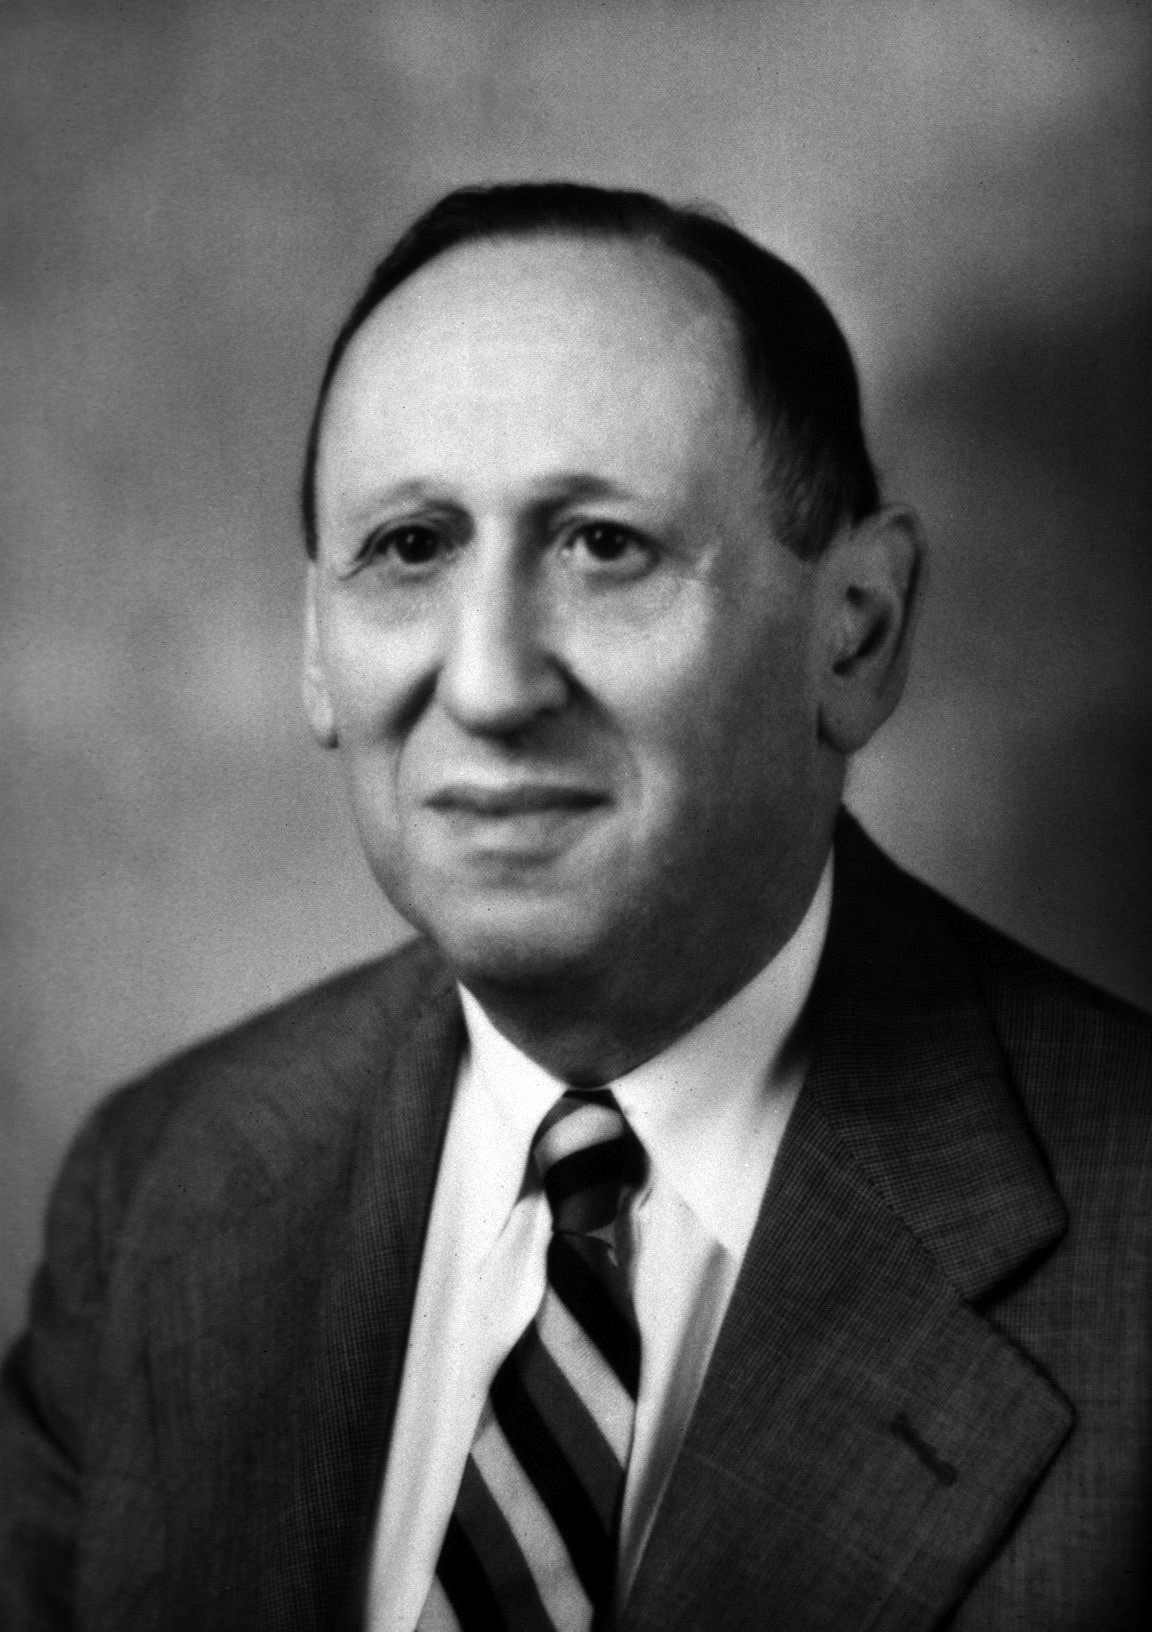 Head and shoulders of a man in his early 60s in coat and tie, facing slightly to his right. He is balding and has a serious but slightly smiling expression.